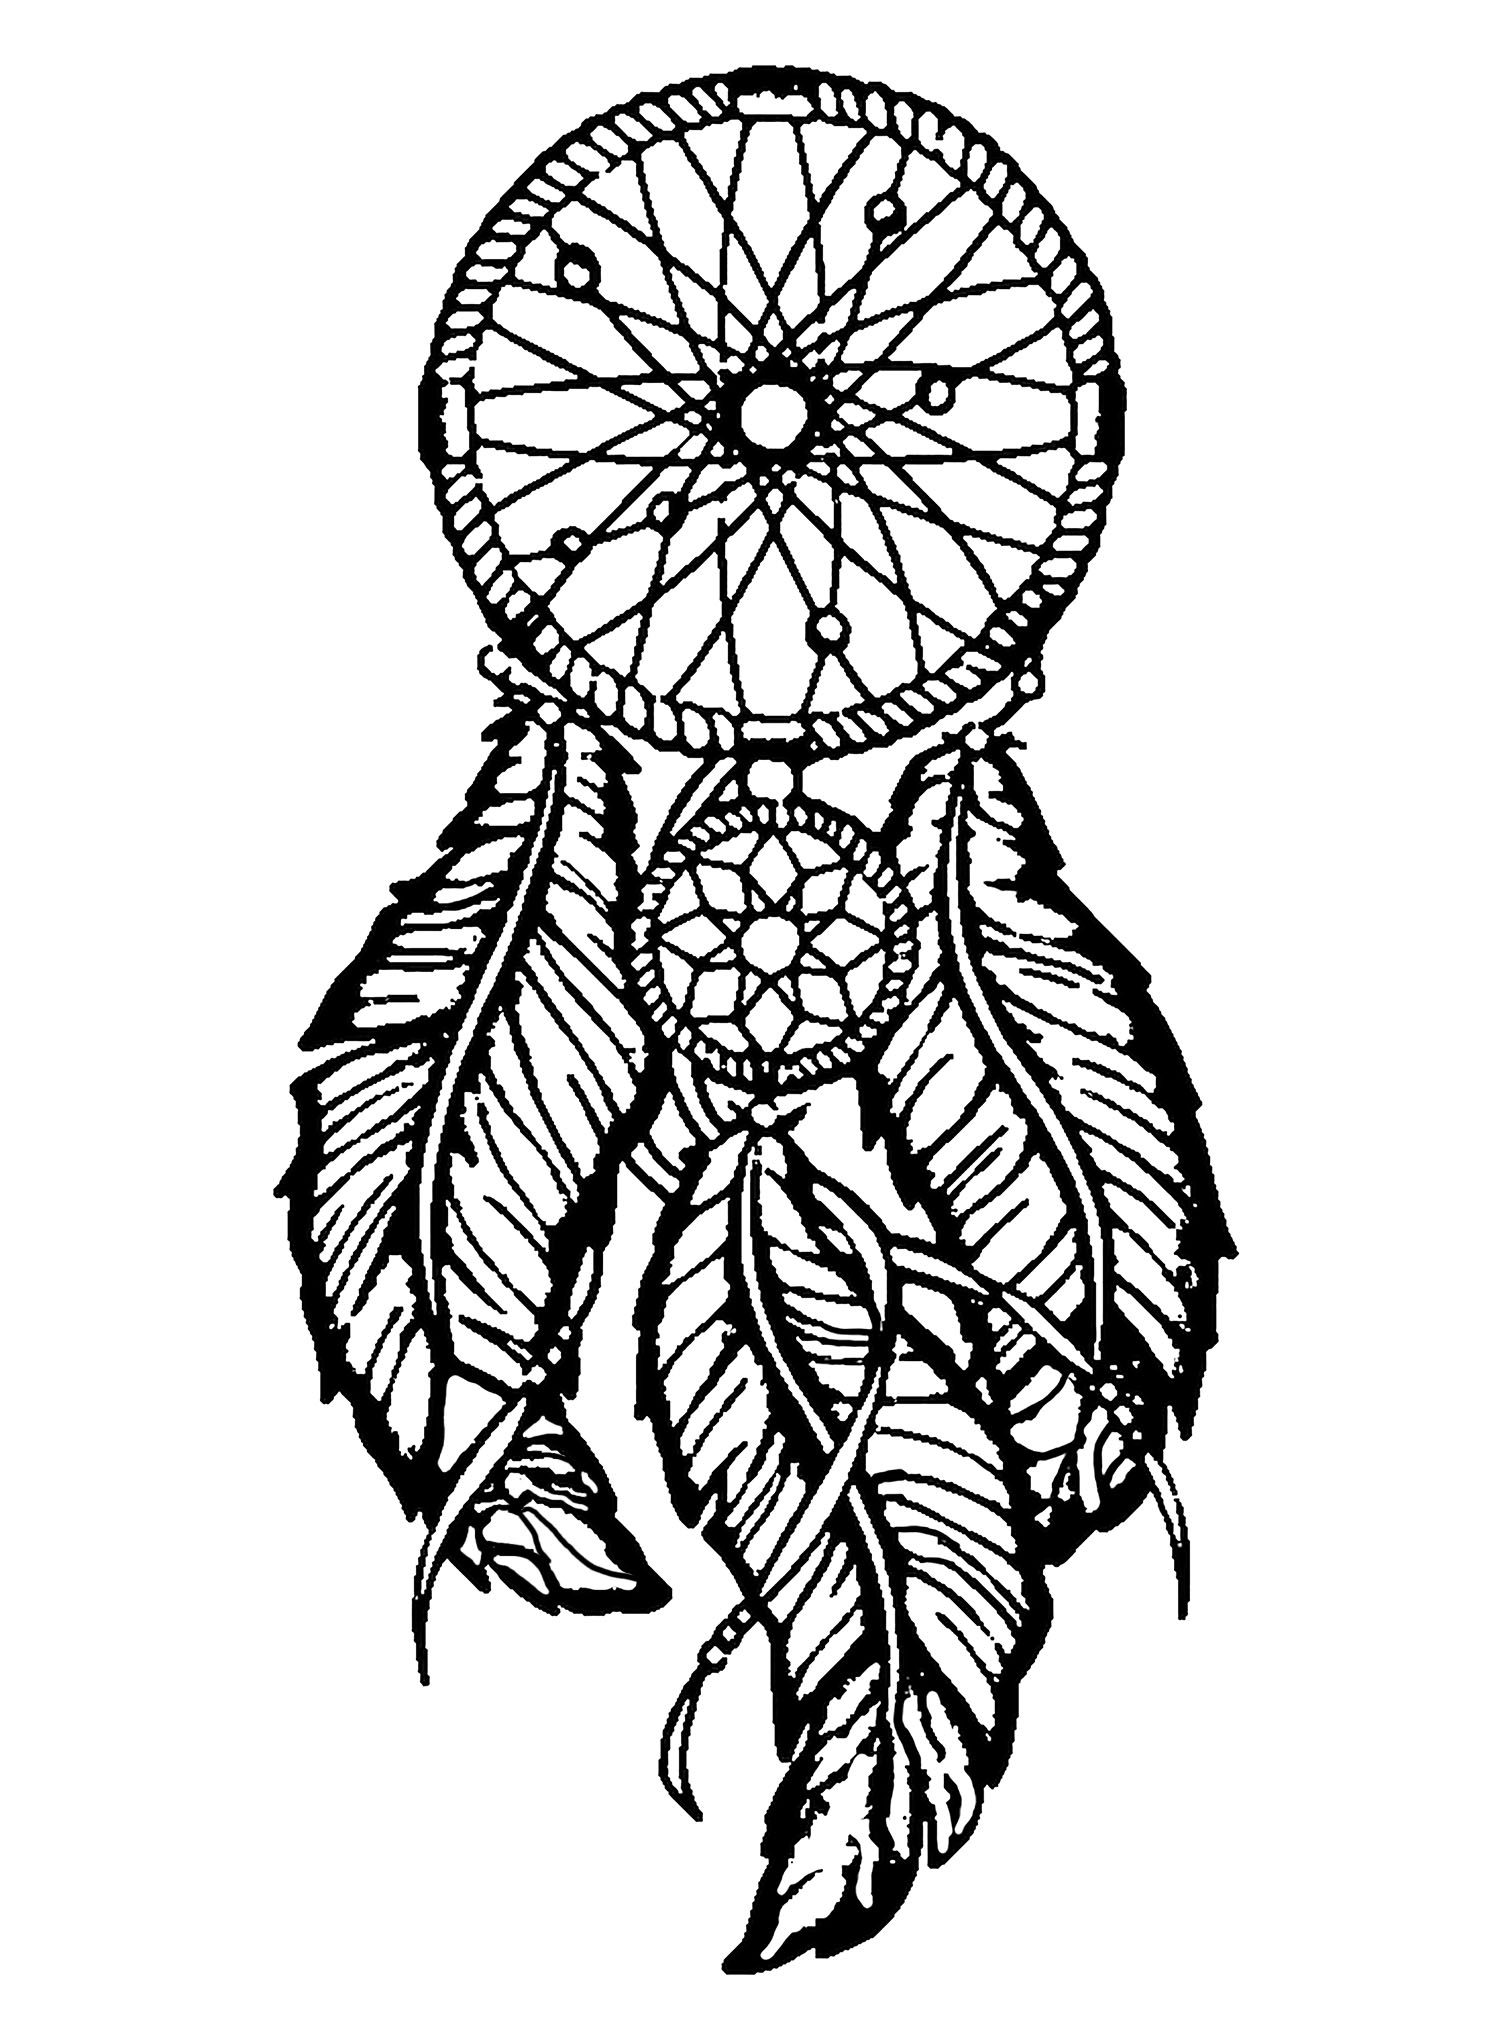 Dreamcatcher to print and color : big feathers